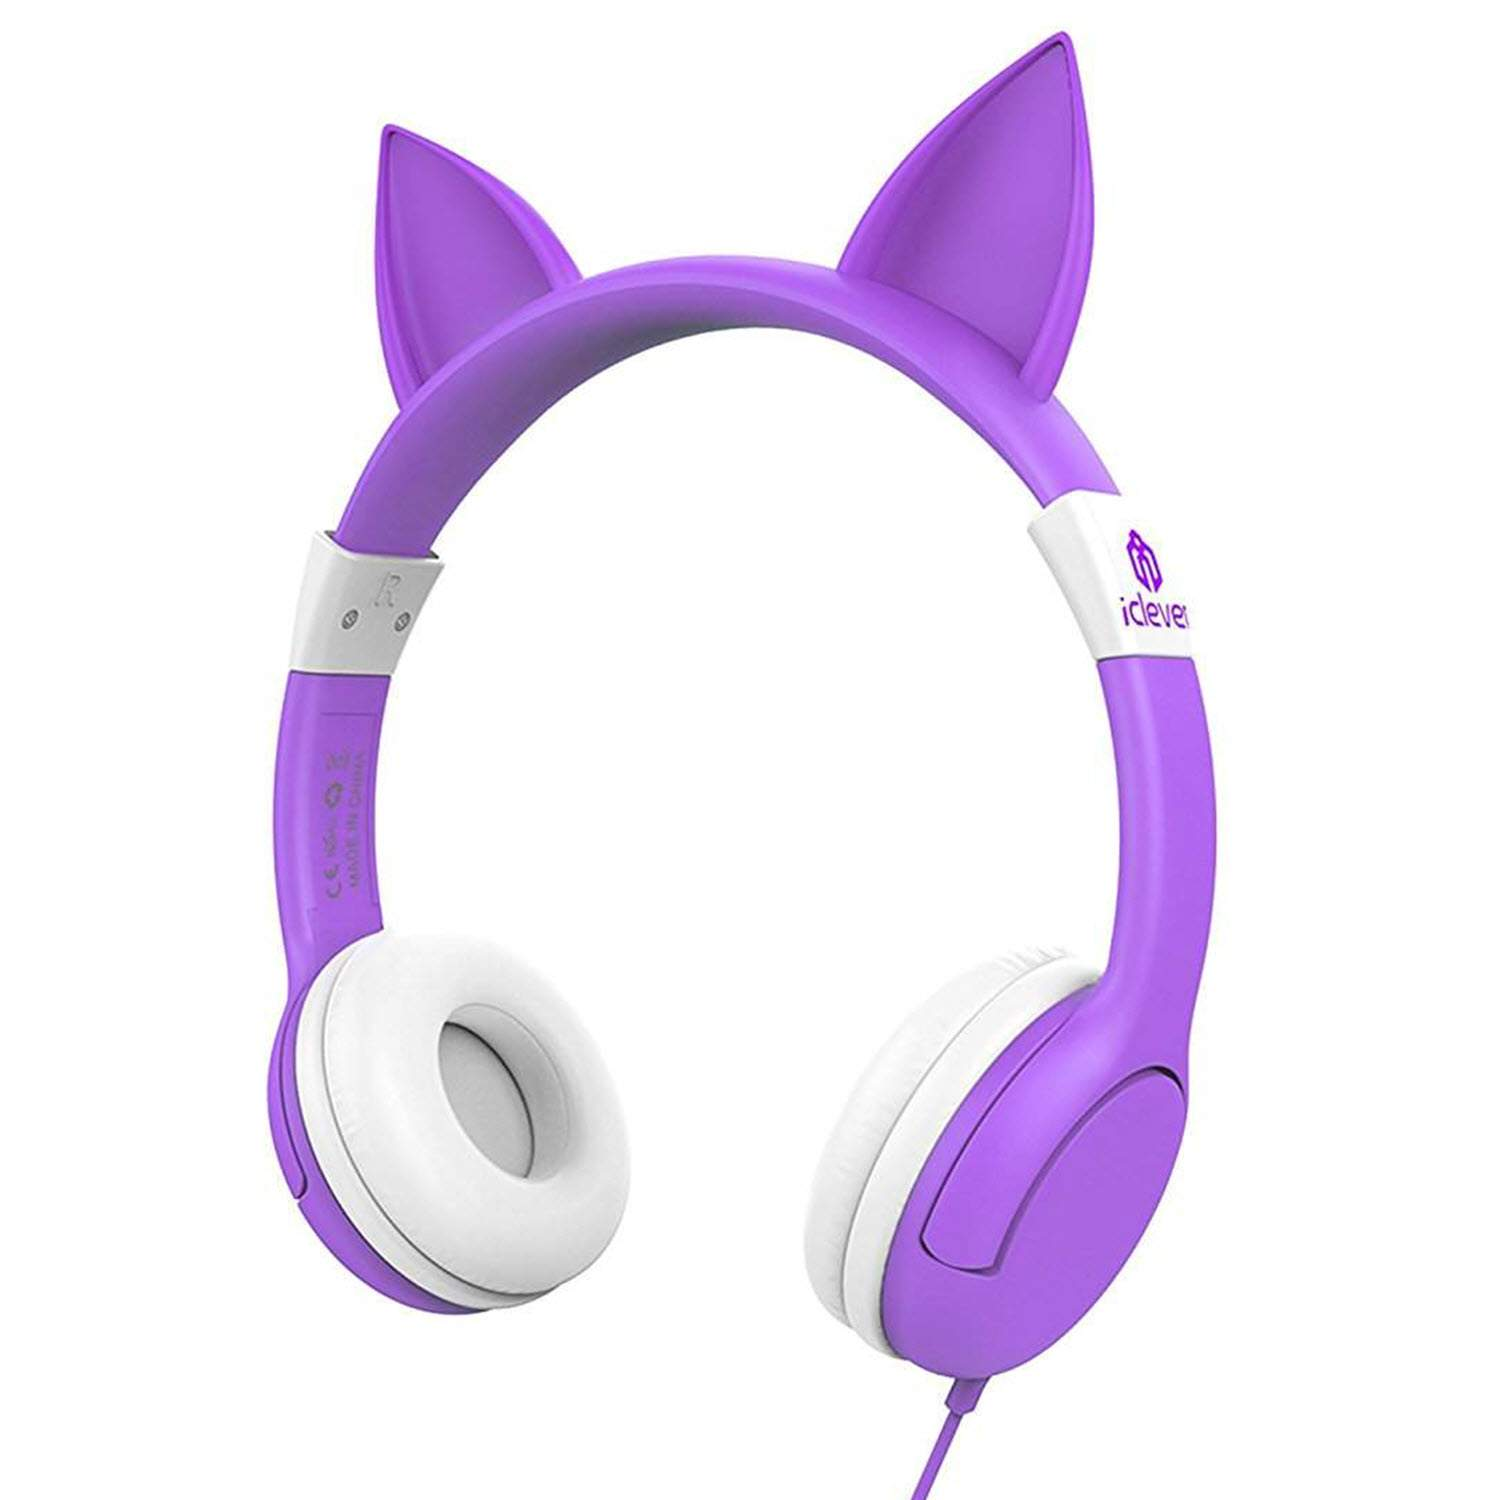 iClever BoostCare Wired Kids Cat Ear Headphones (Purple)